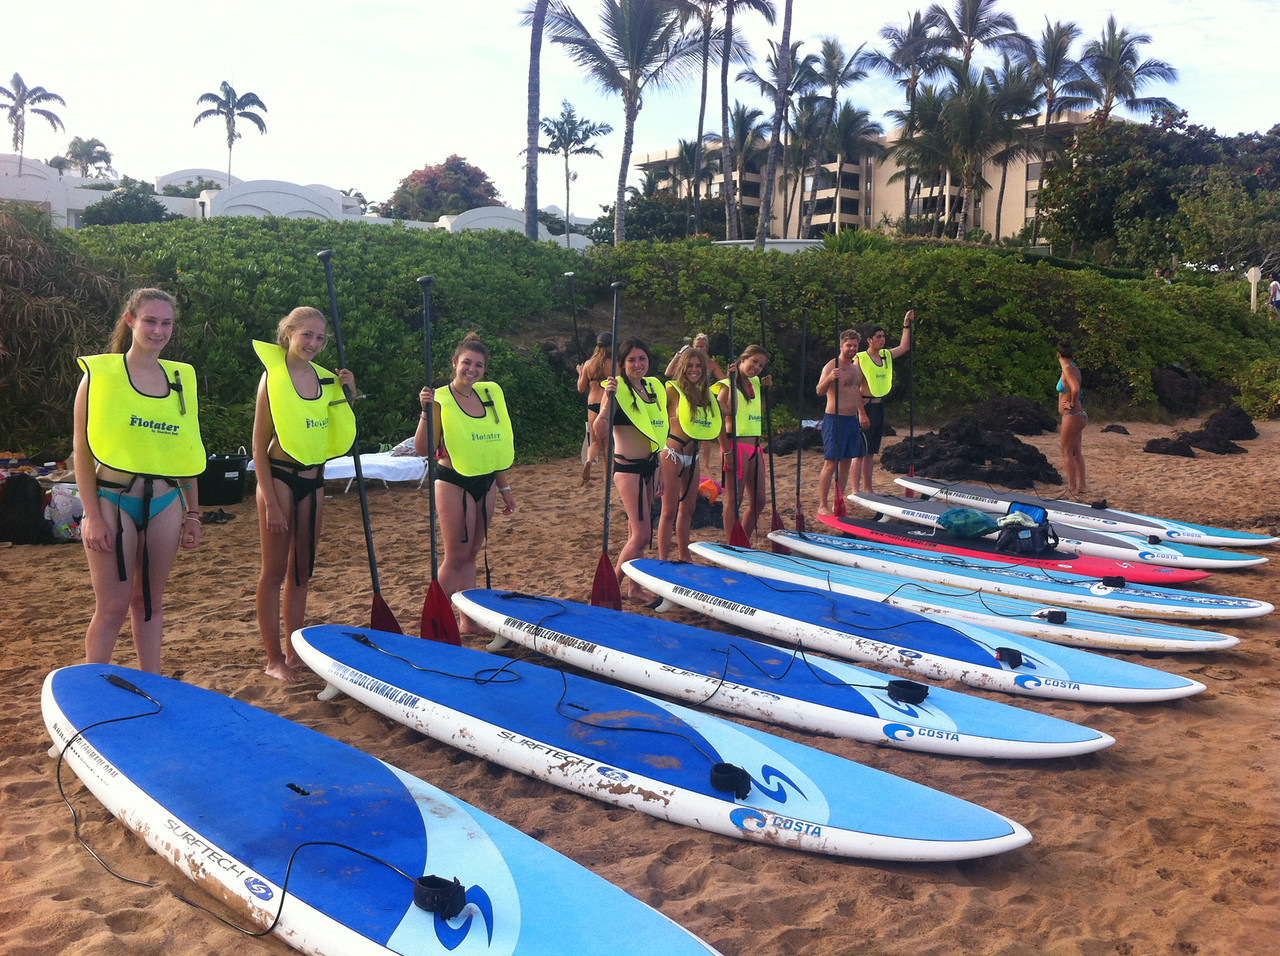 Hawaii Community Service Surfing the Waves